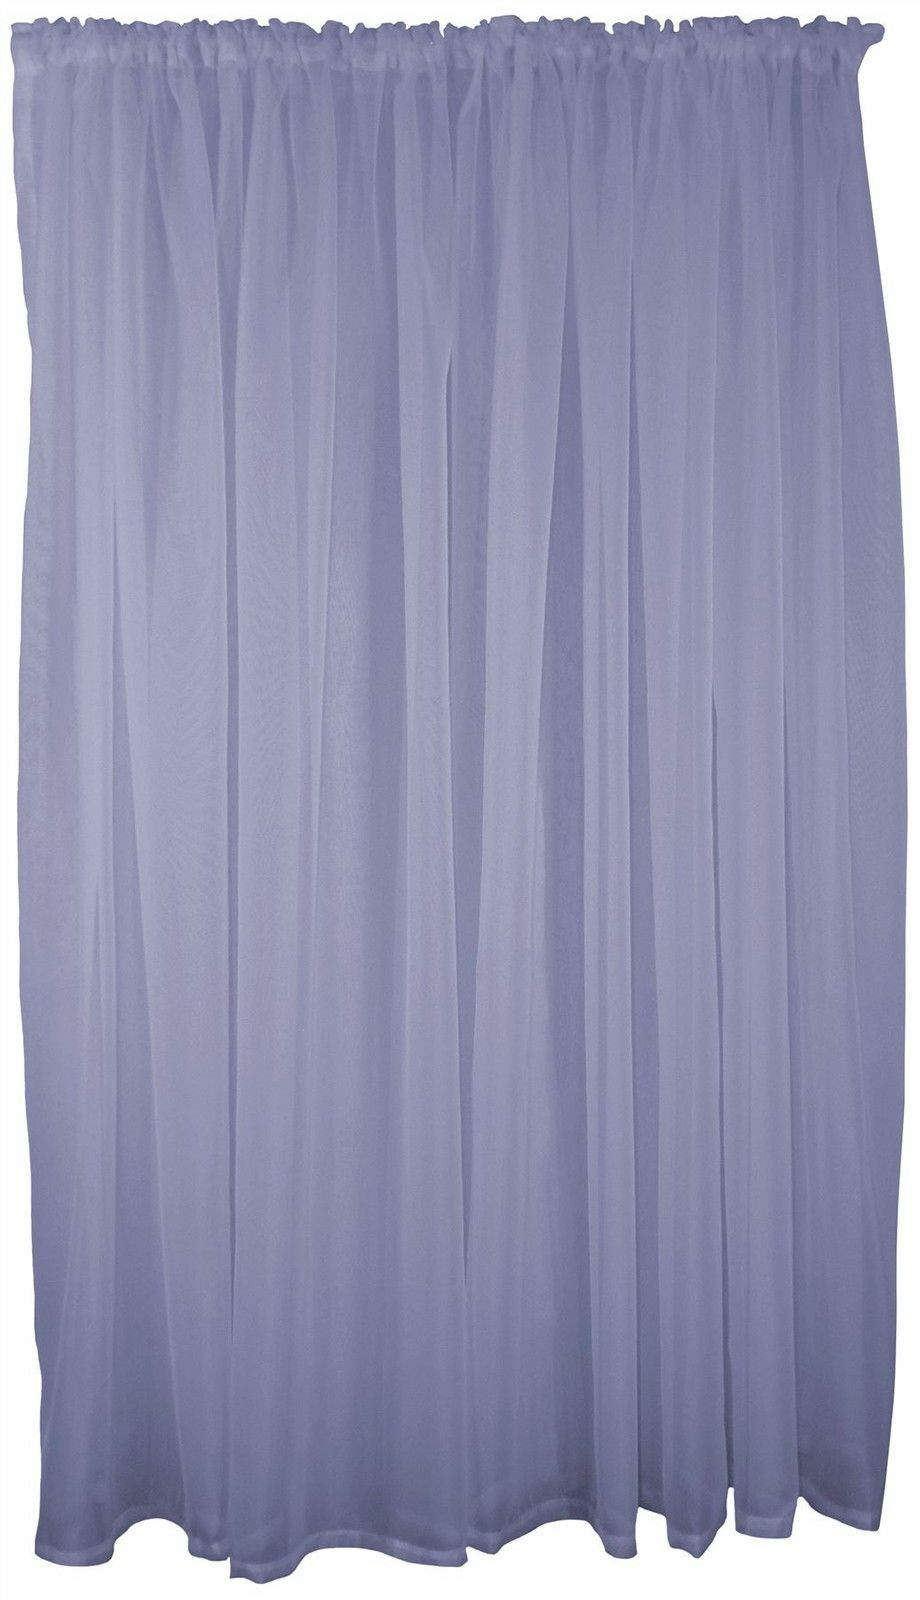 Purple Curtains Drapes And Valances For Sale Ebay